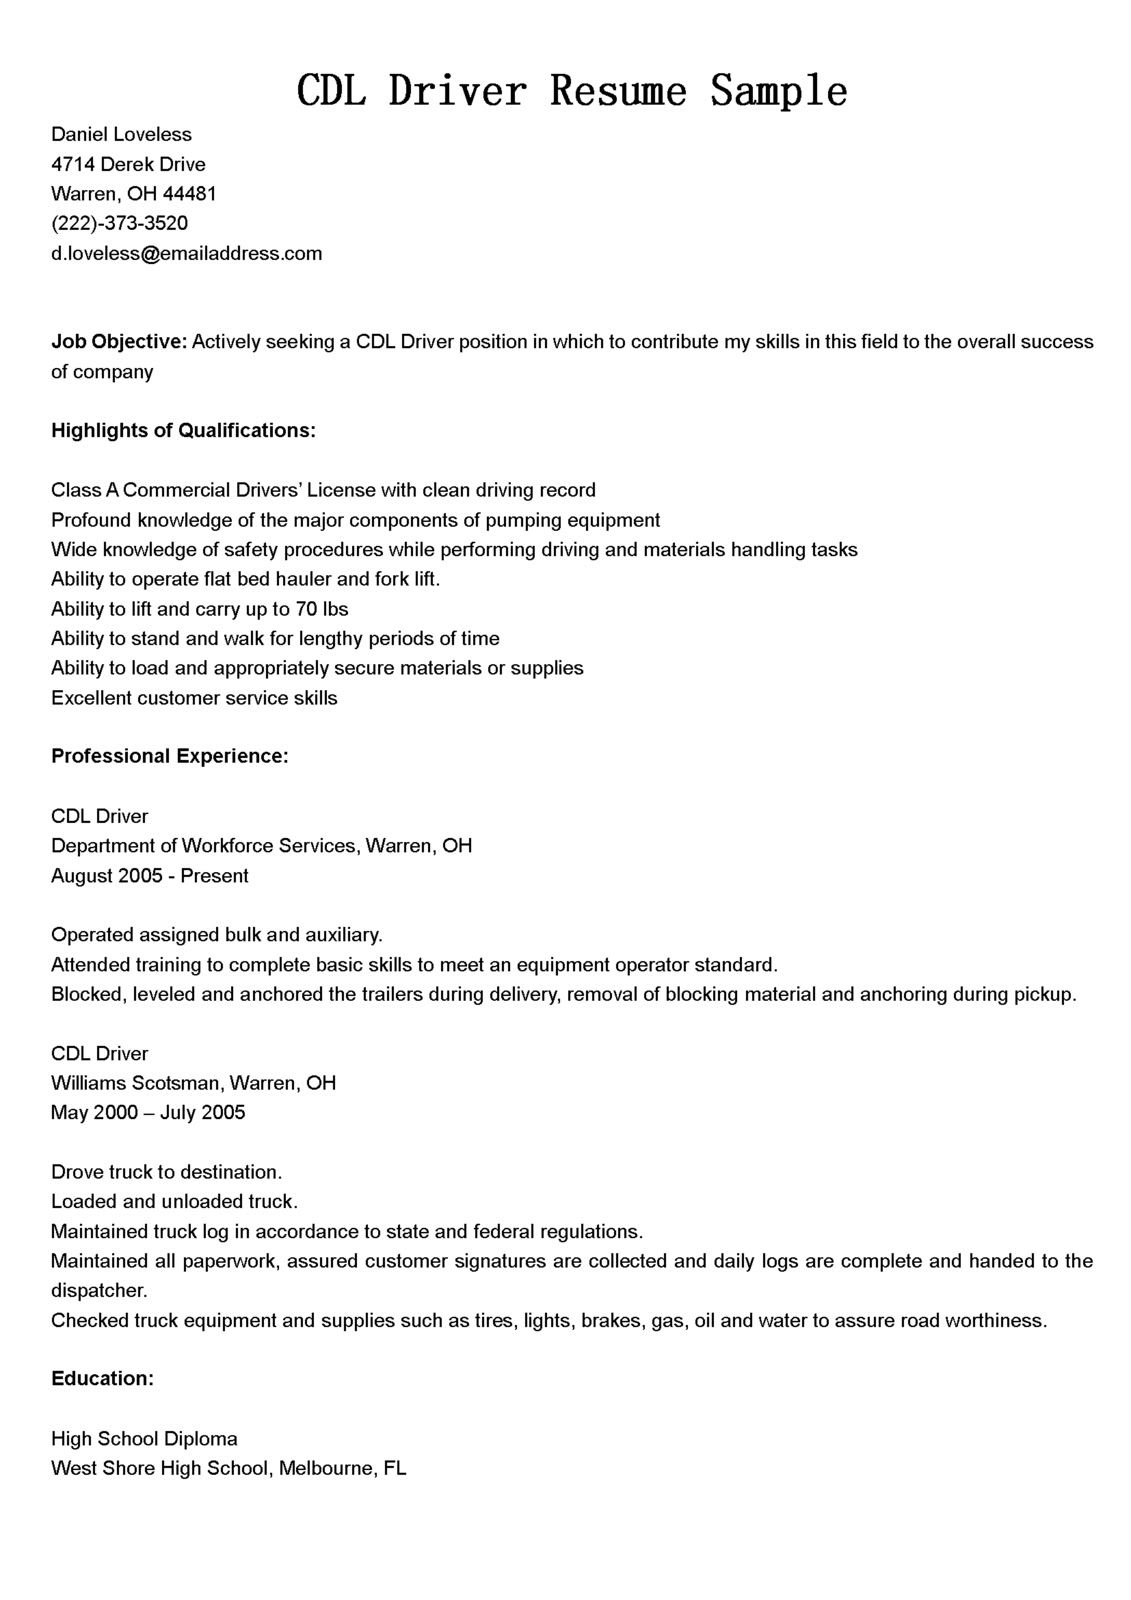 Driver Resume Cdl Driver Resume Samplesml Sample Best Images About Example High